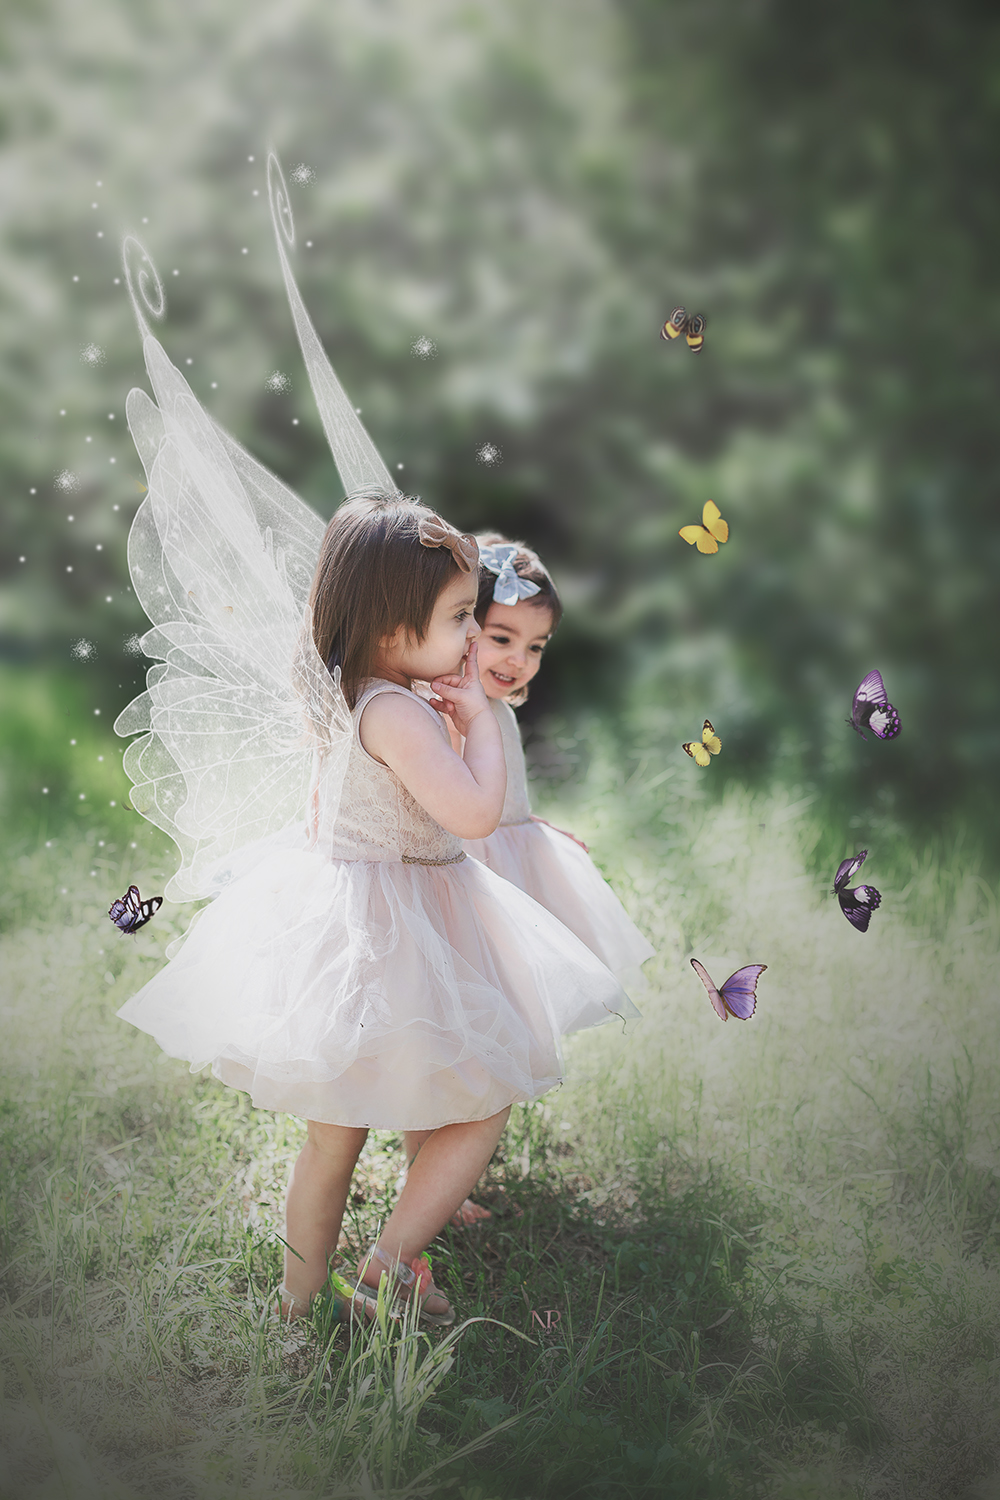 My absolute favorite- dreamt about this image being with wings- so even though I was not asked to create it-- I had too. And I adore it!